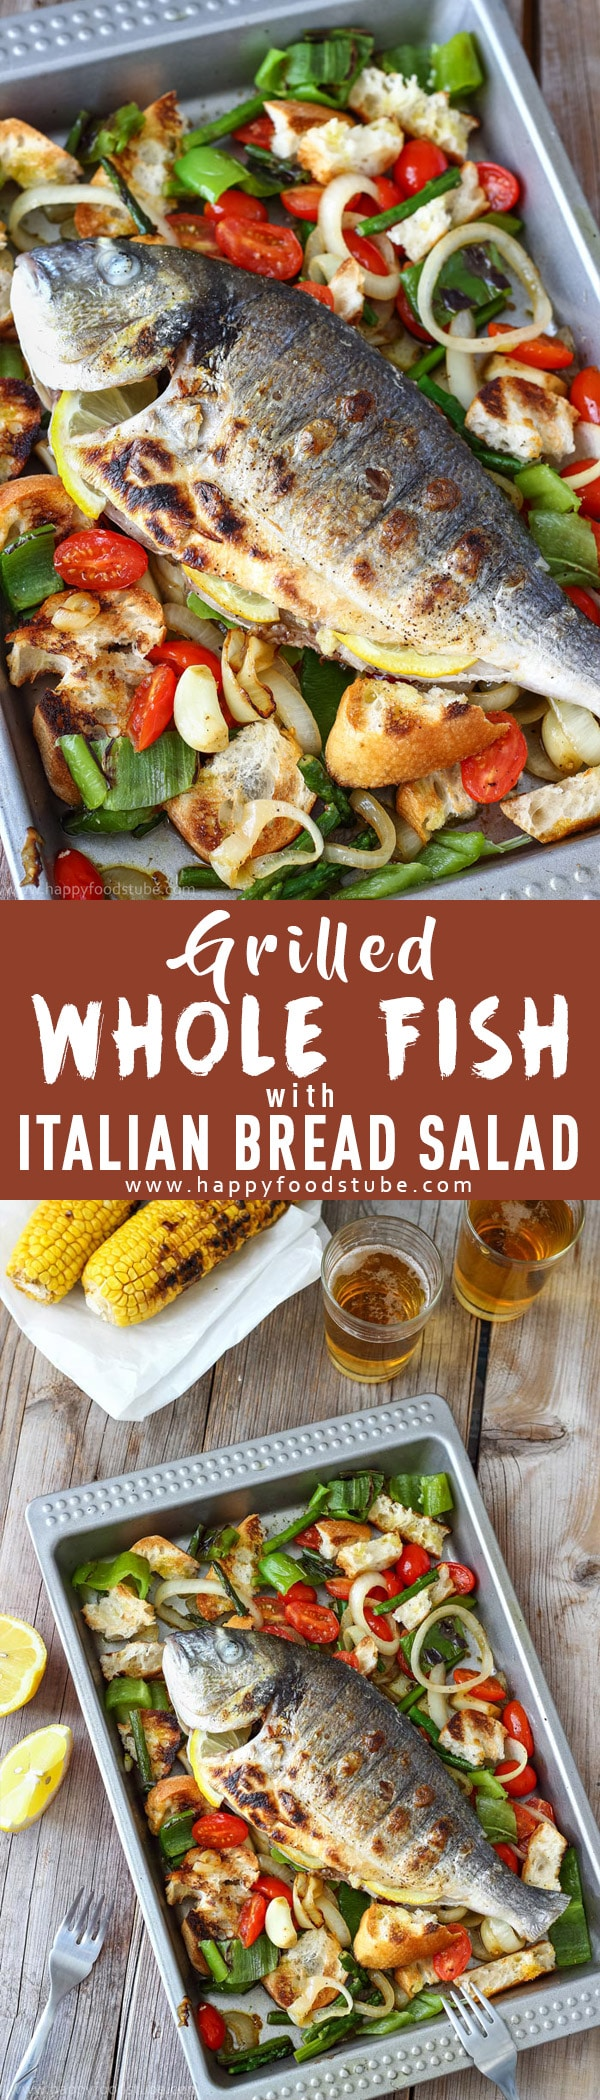 Grilled whole fish with Italian bread salad is the perfect summer recipe. Juicy flesh is hidden under crispy skin and served on a bed of grilled vegetables & bread. Easy to prepare and quick to grill